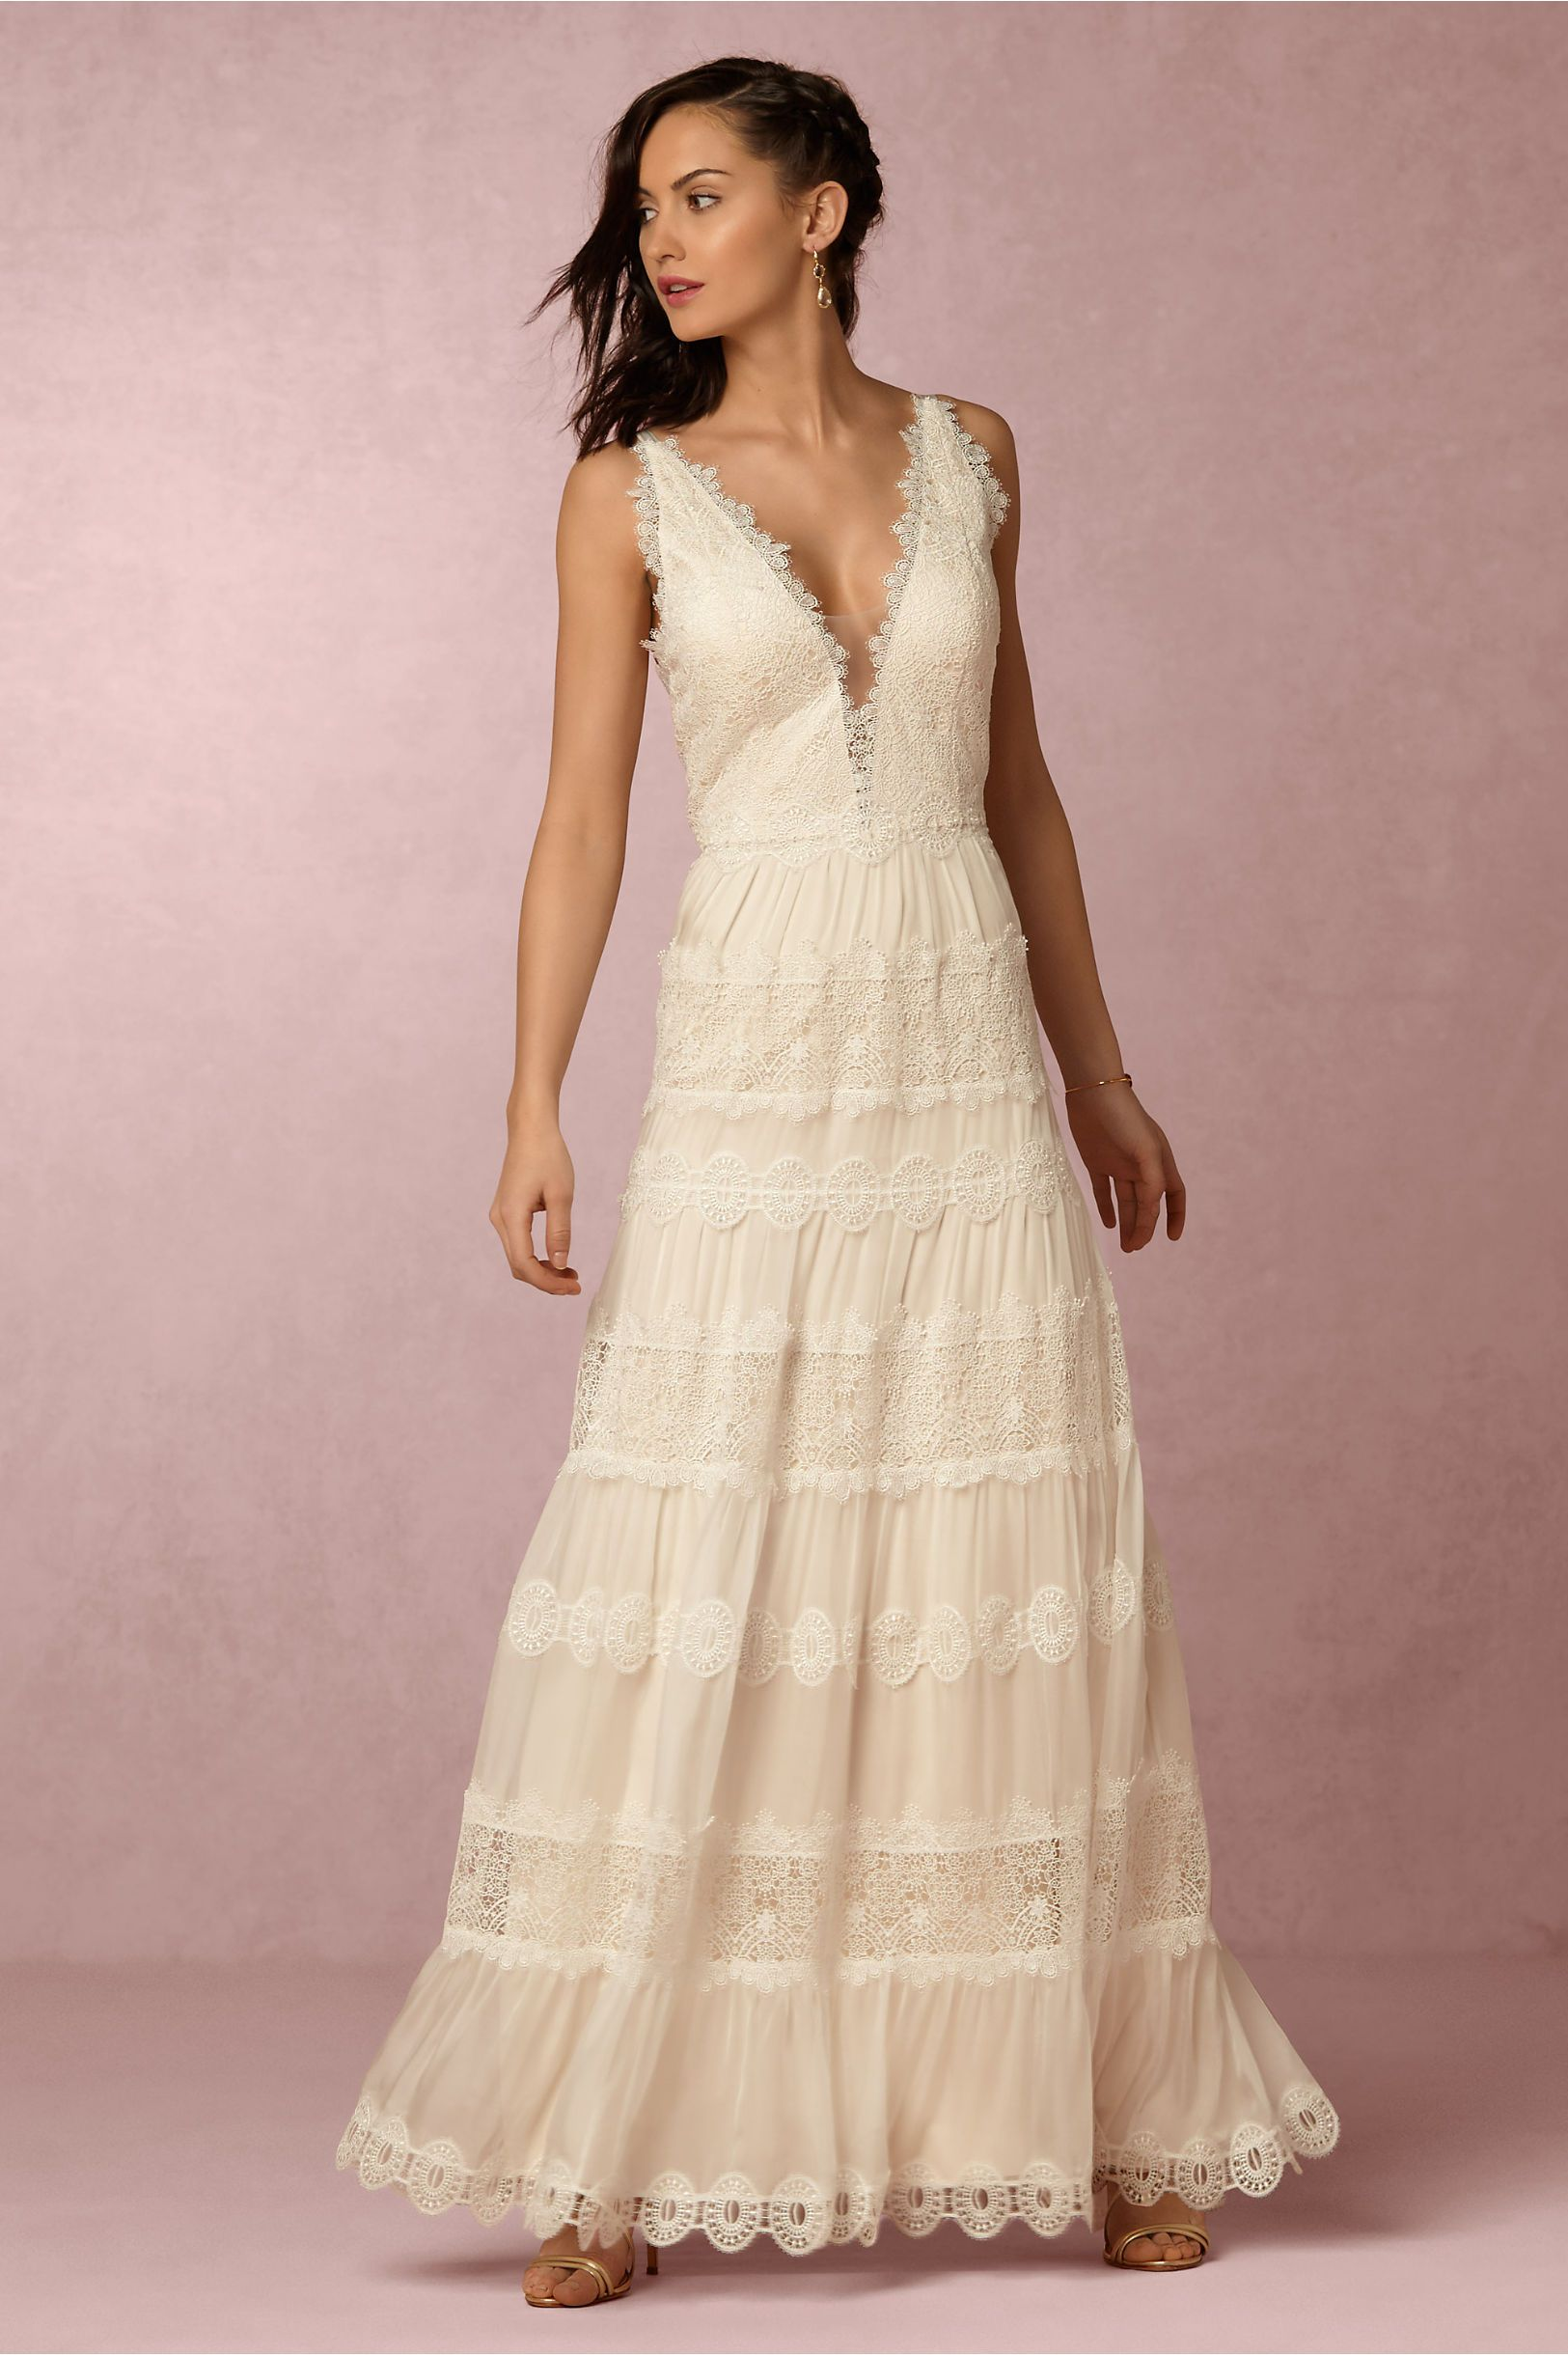 lace backless wedding dress   Genevieve Gown by Catherine Deane for ...